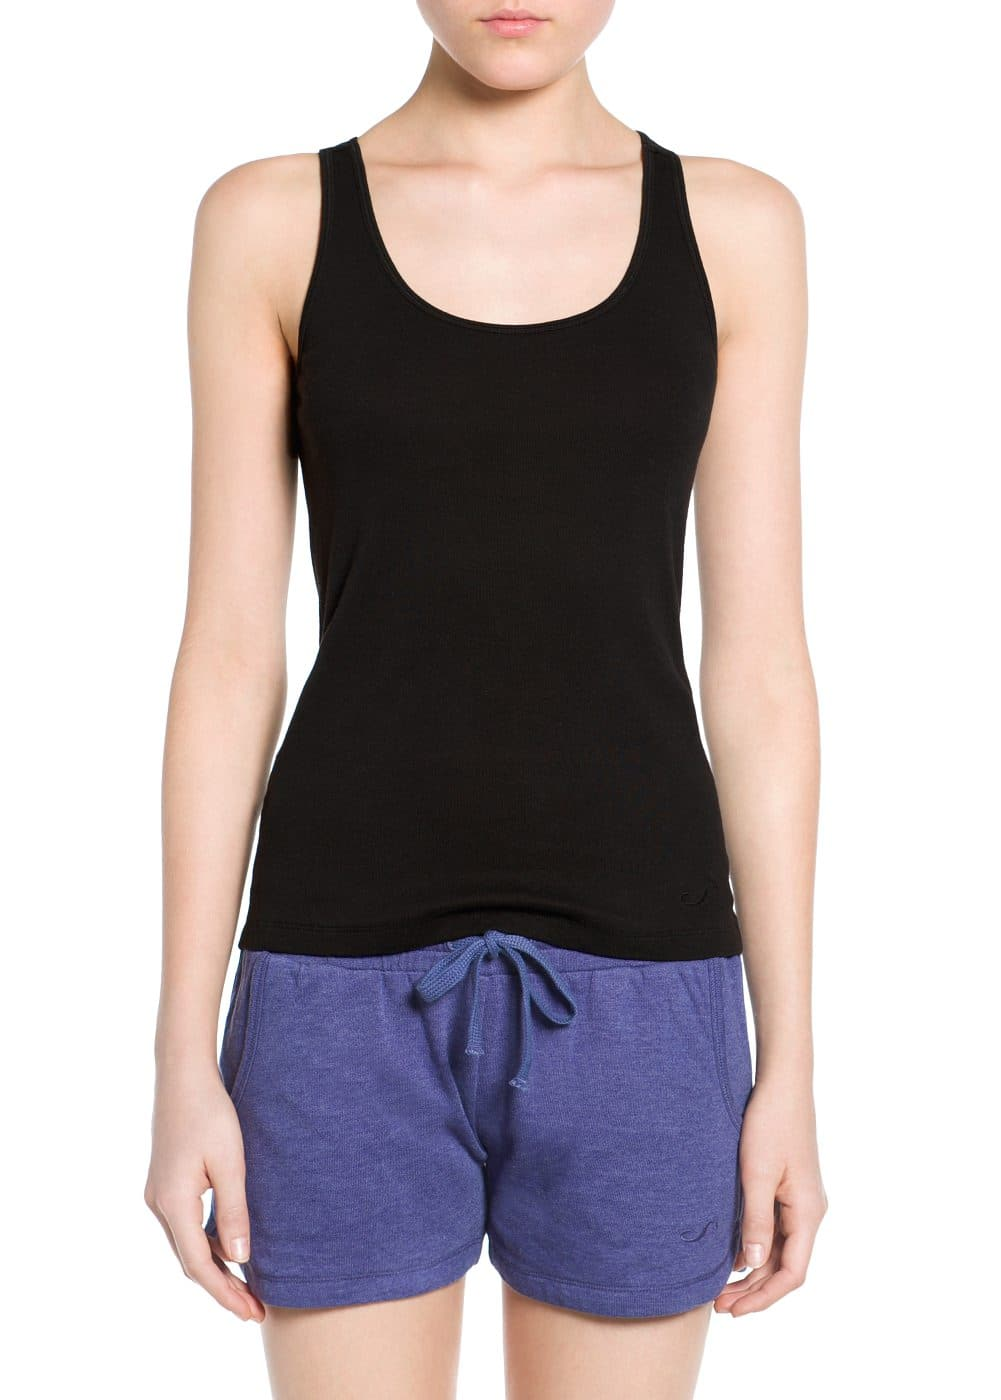 Yoga - T-shirt soft sport